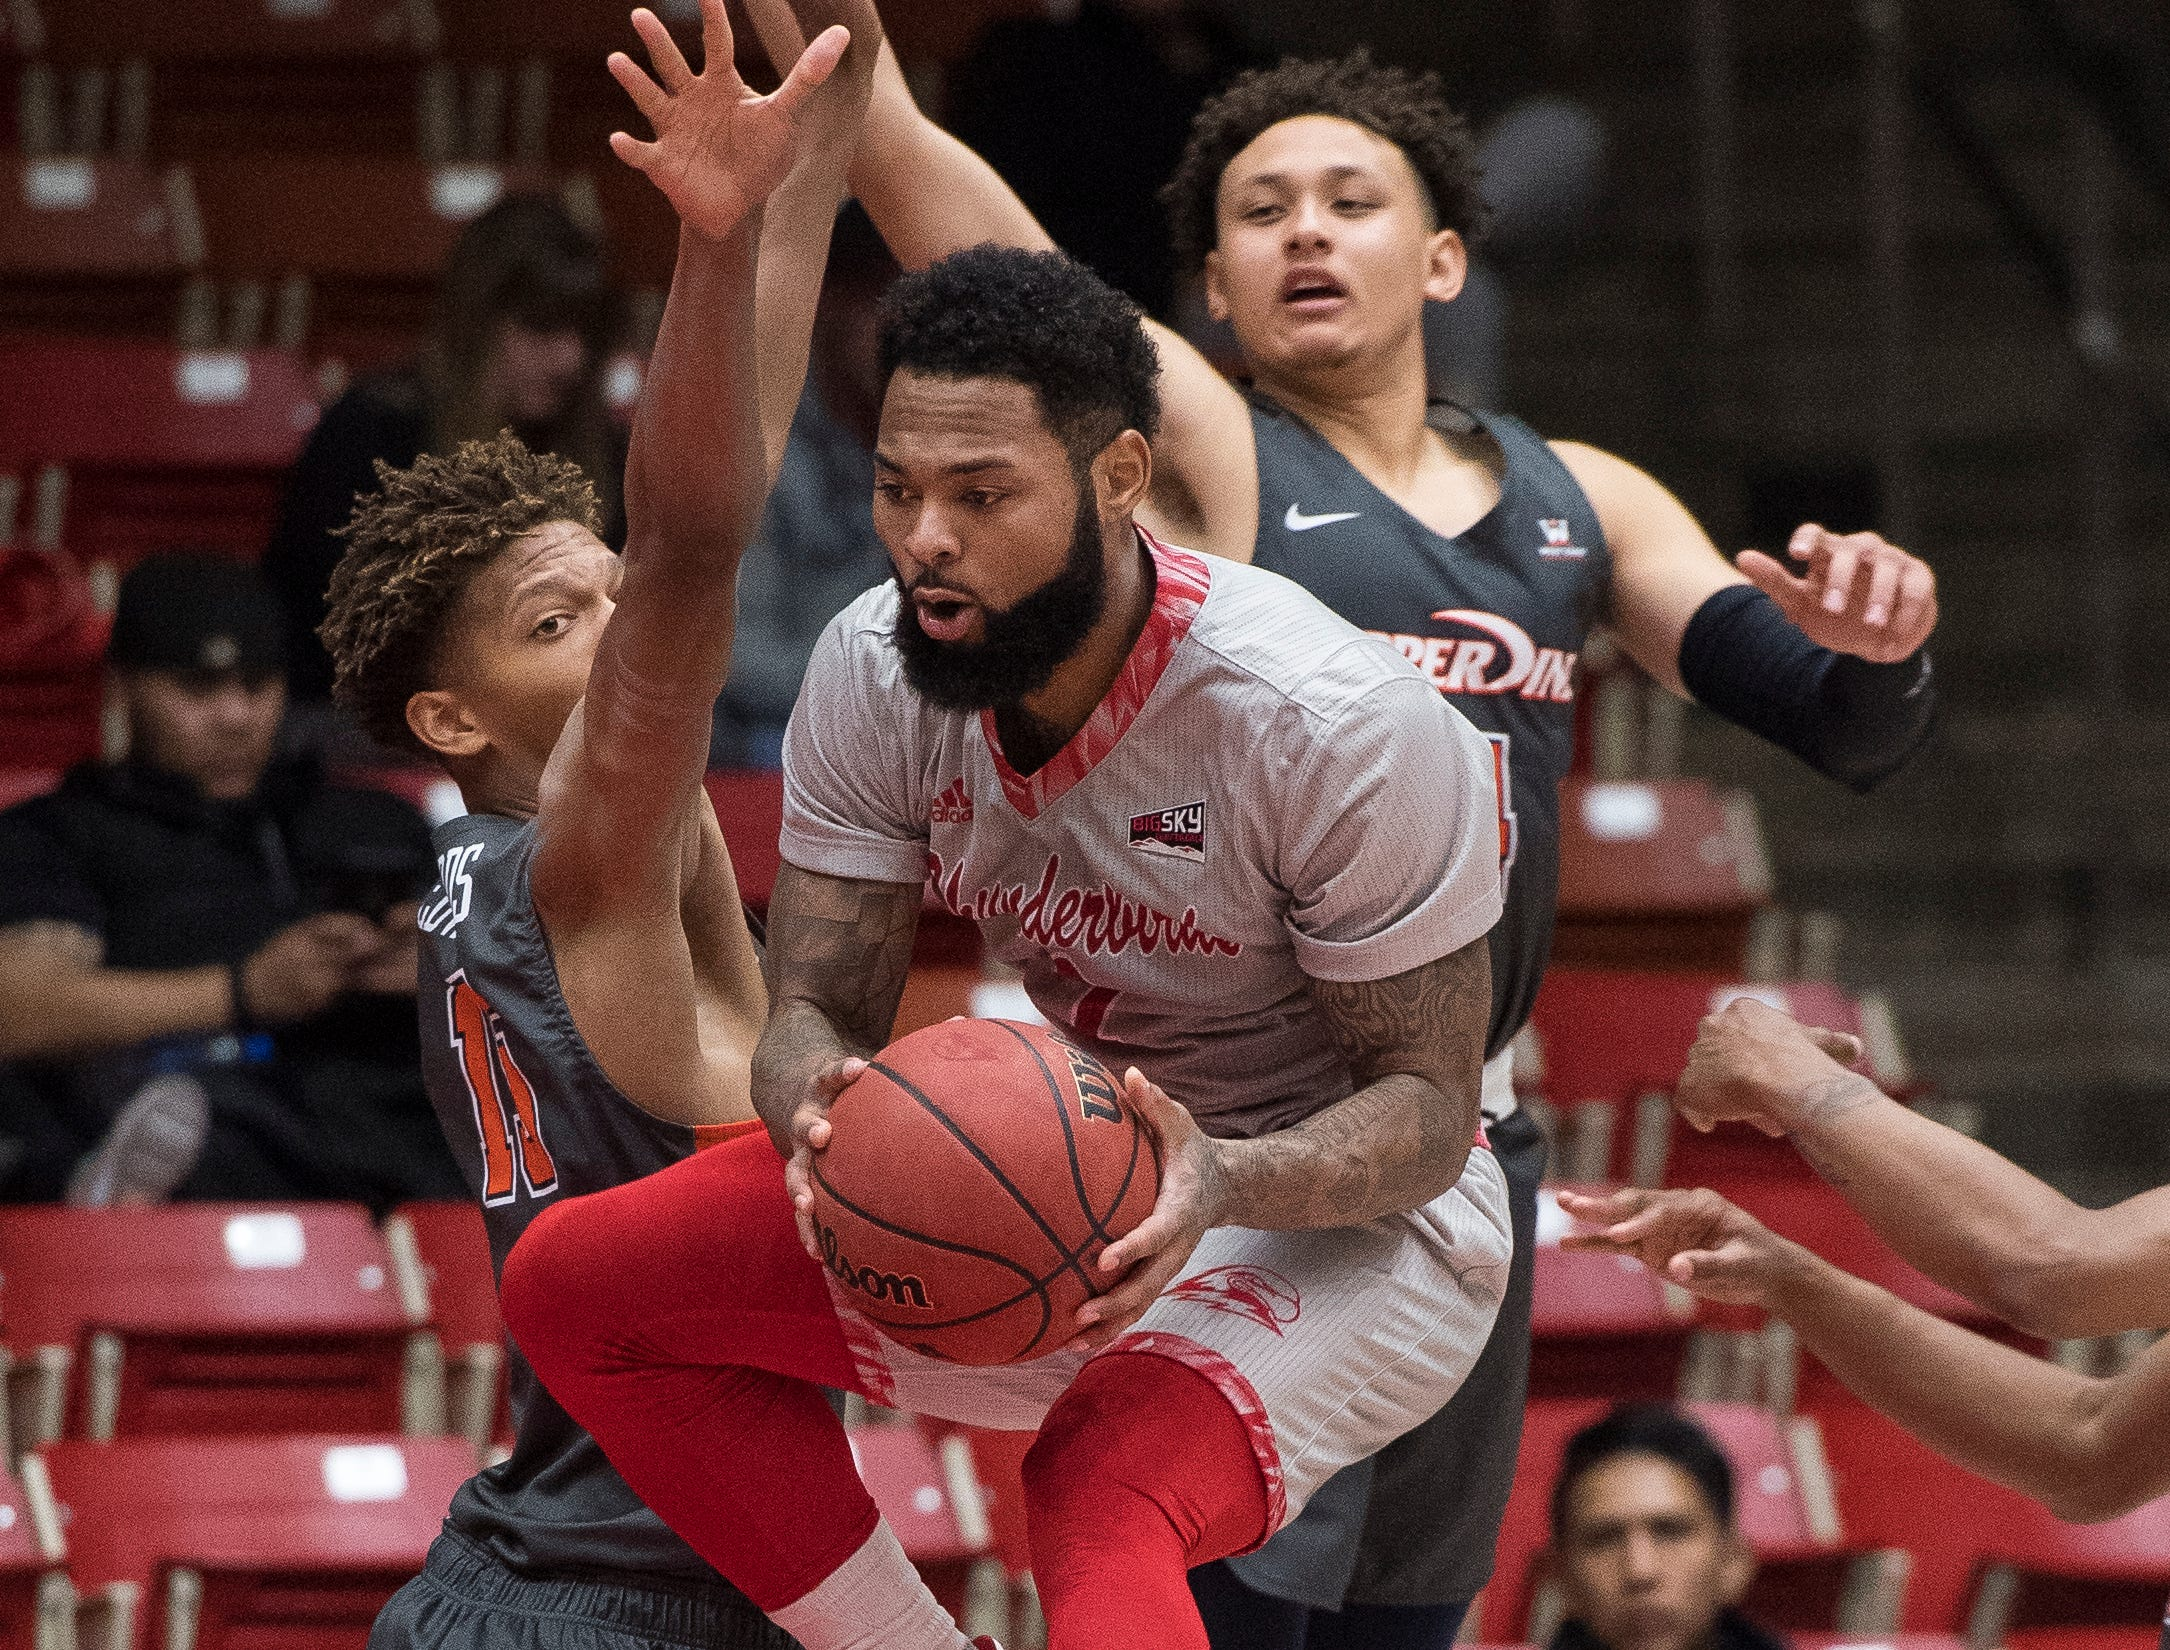 Southern Utah University freshman Kenton Eskridge (1) leaps through the air against Pepperdine University in the America First Event Center Saturday, December 15, 2018. SUU won in overtime, 78-69.